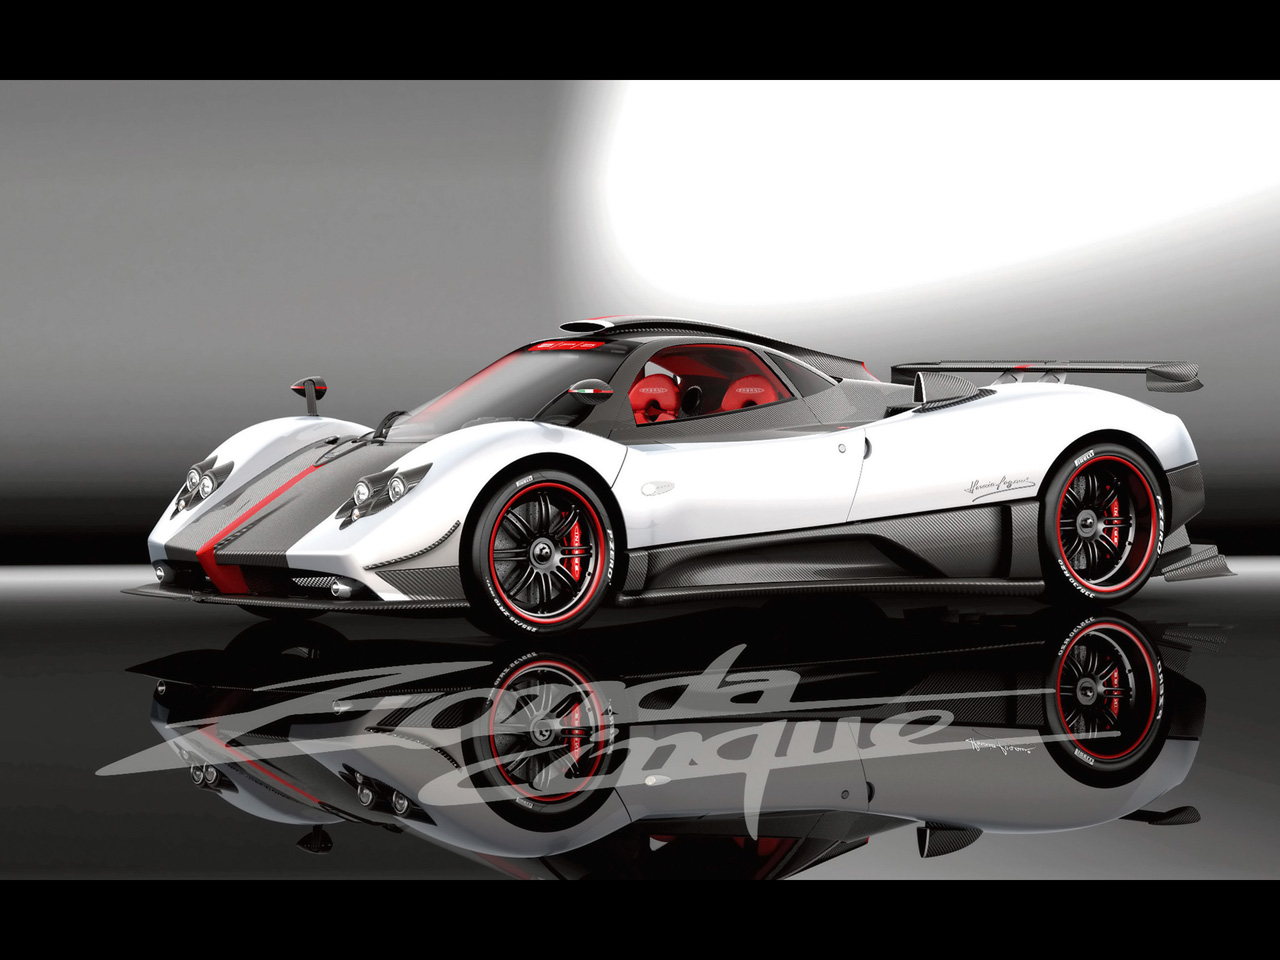 2018 Pagani Zonda Cinque Roadster photo - 3